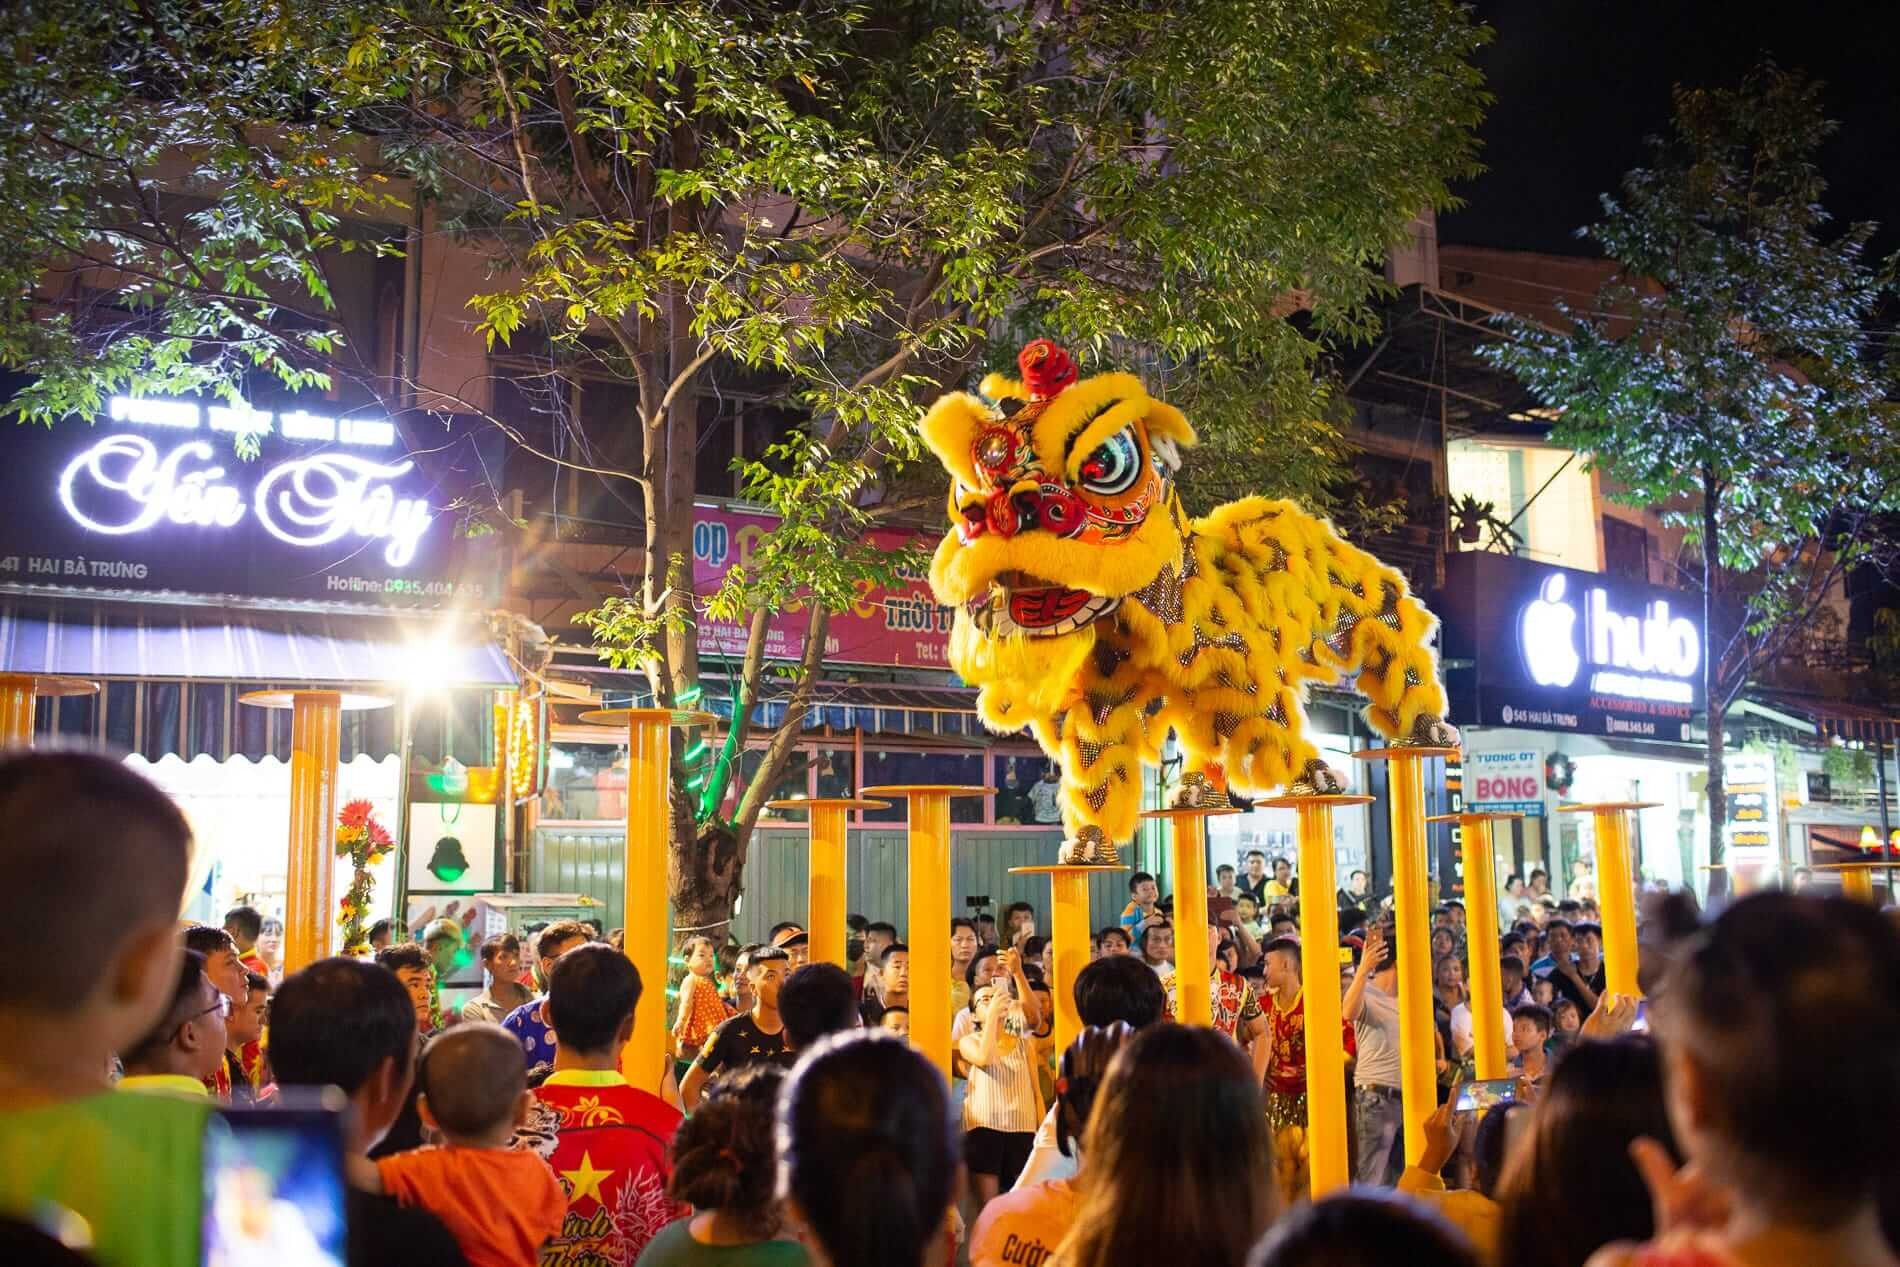 best time to visit Hoi An shows tourists watching a lion dance troupe performer